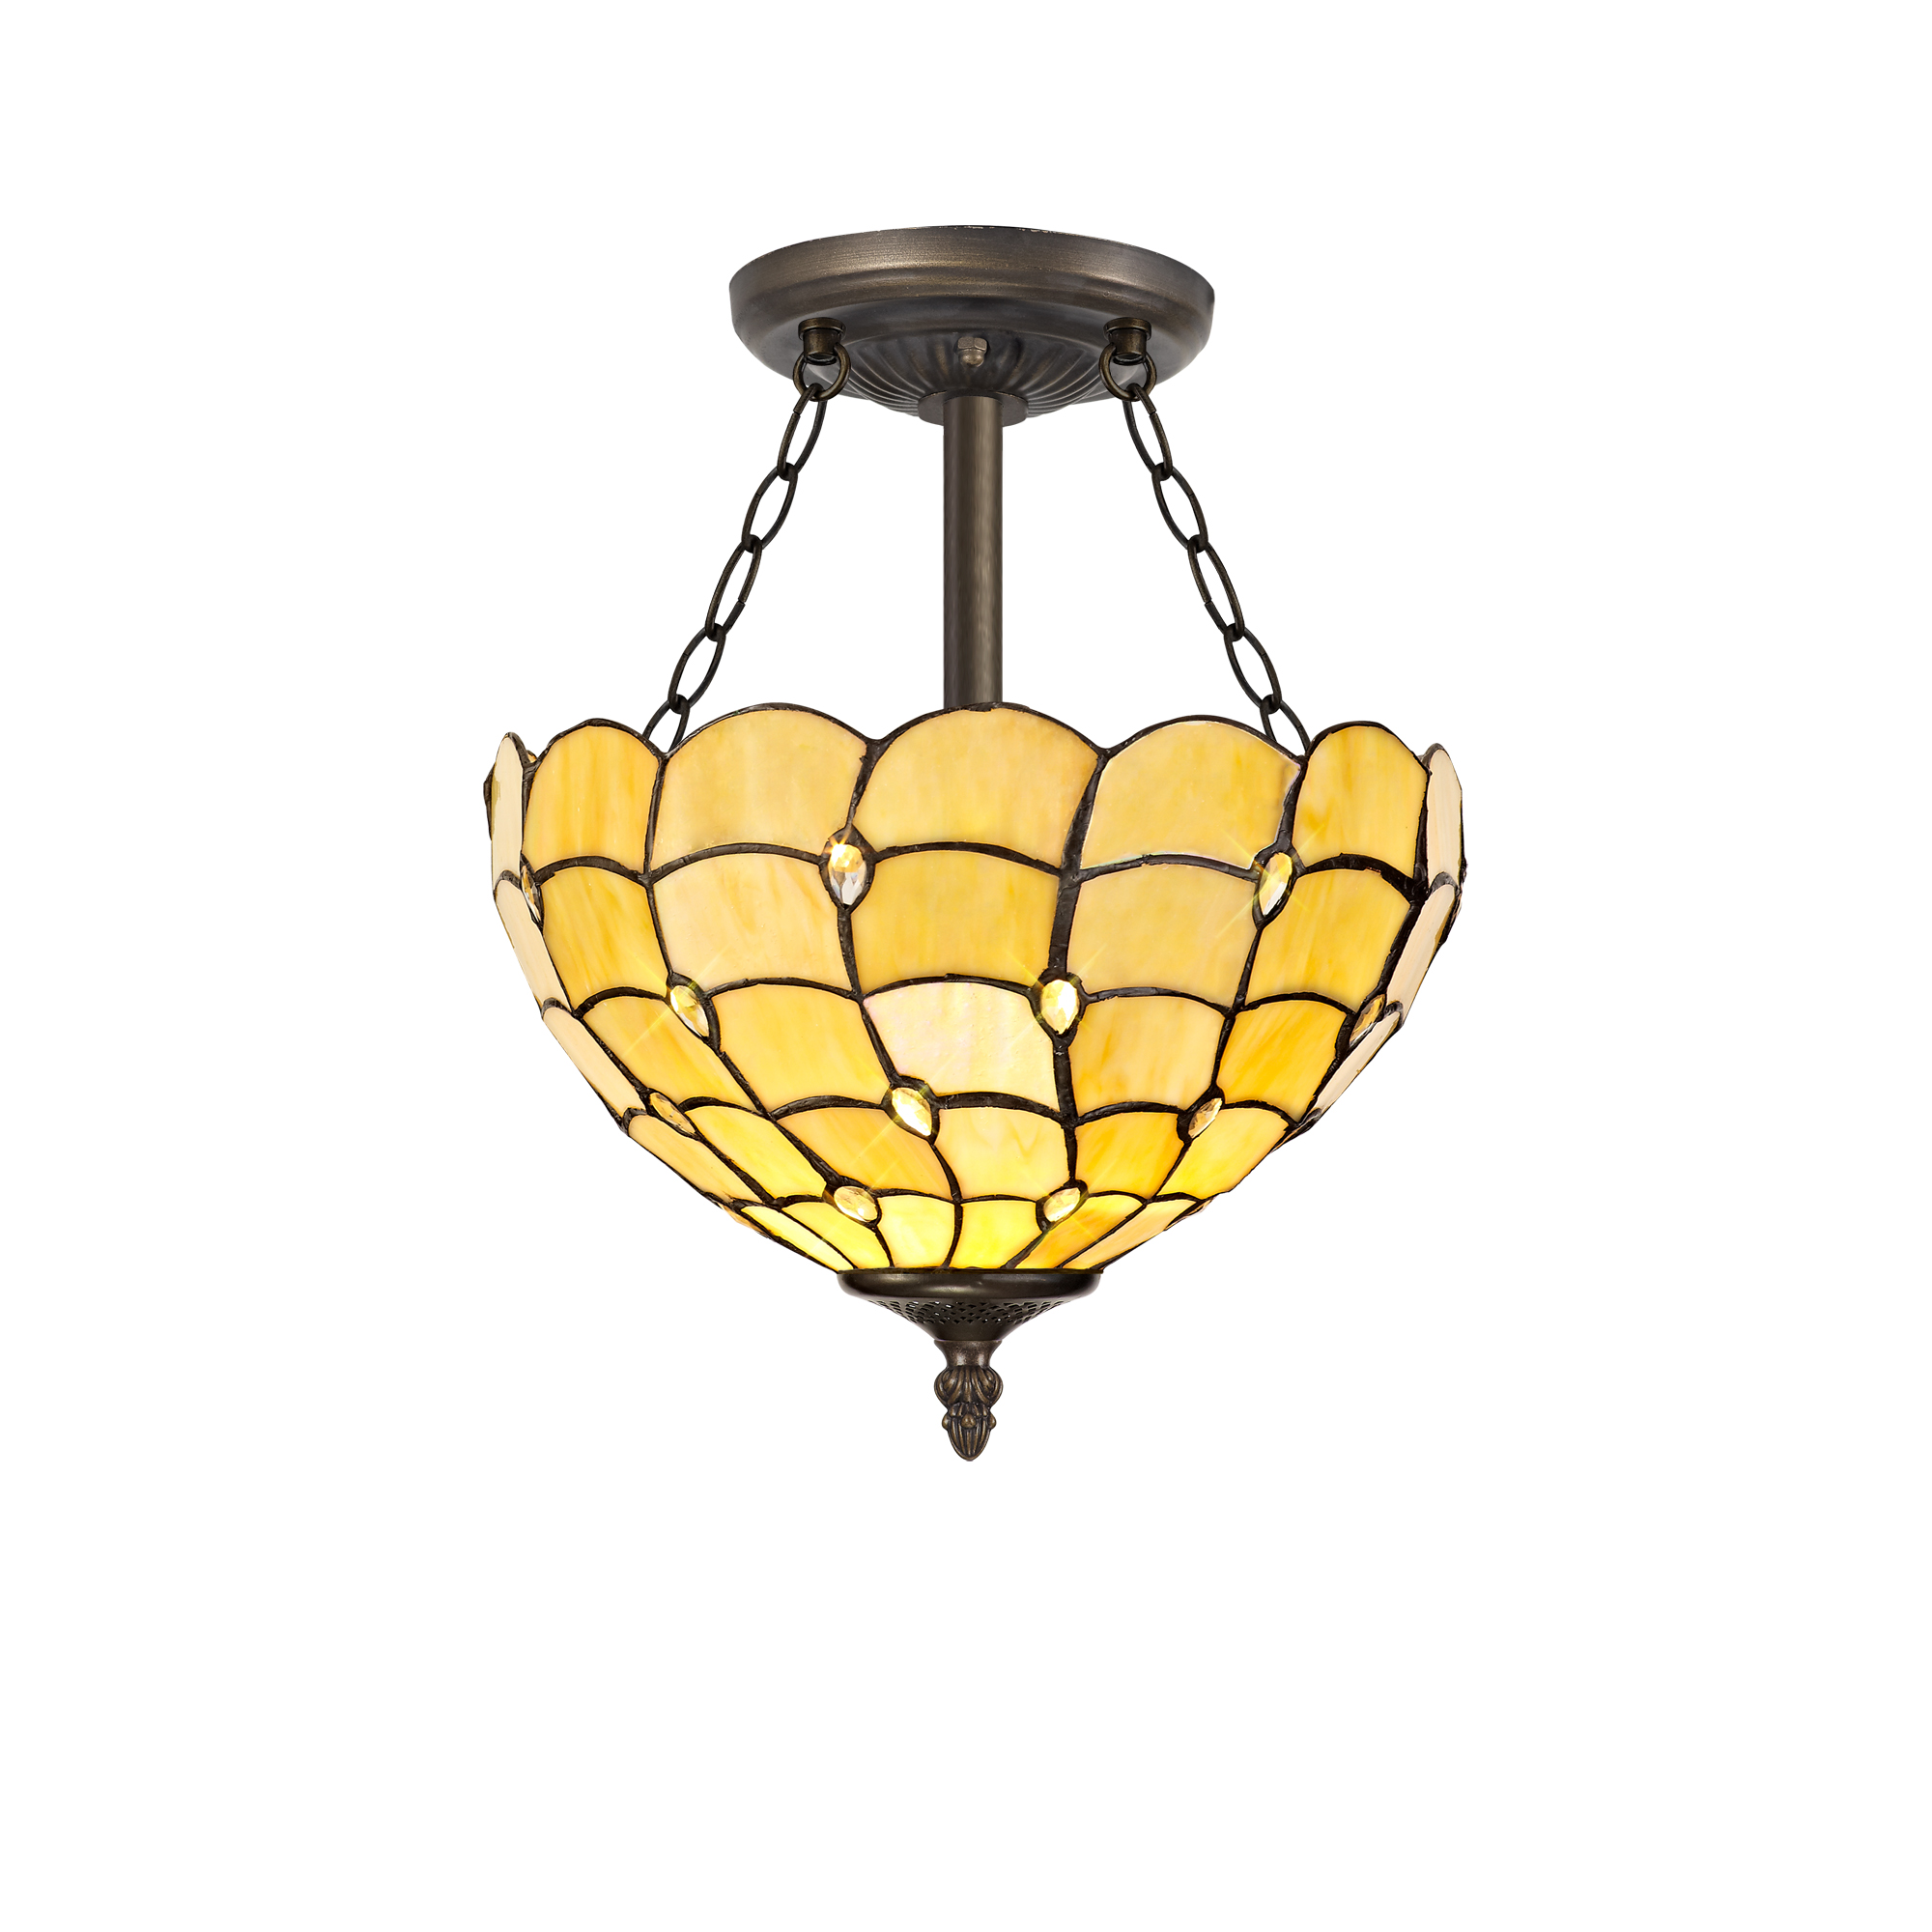 3 Light Semi Ceiling E27 With 30cm Tiffany Shade, Beige/Clear Crystal/Aged Antique Brass